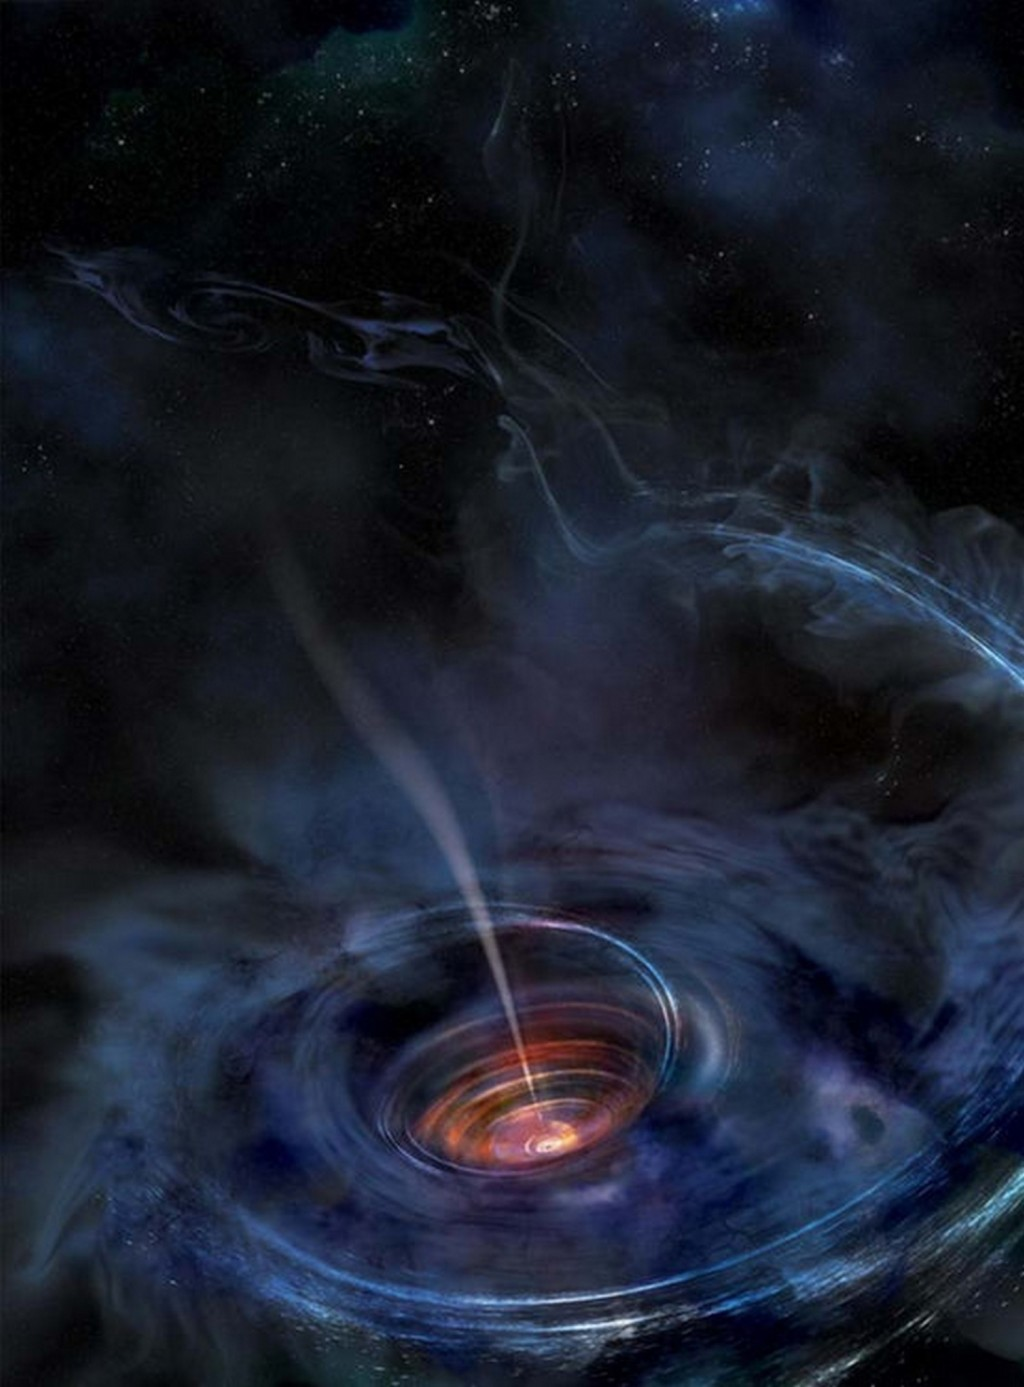 black hole accretion